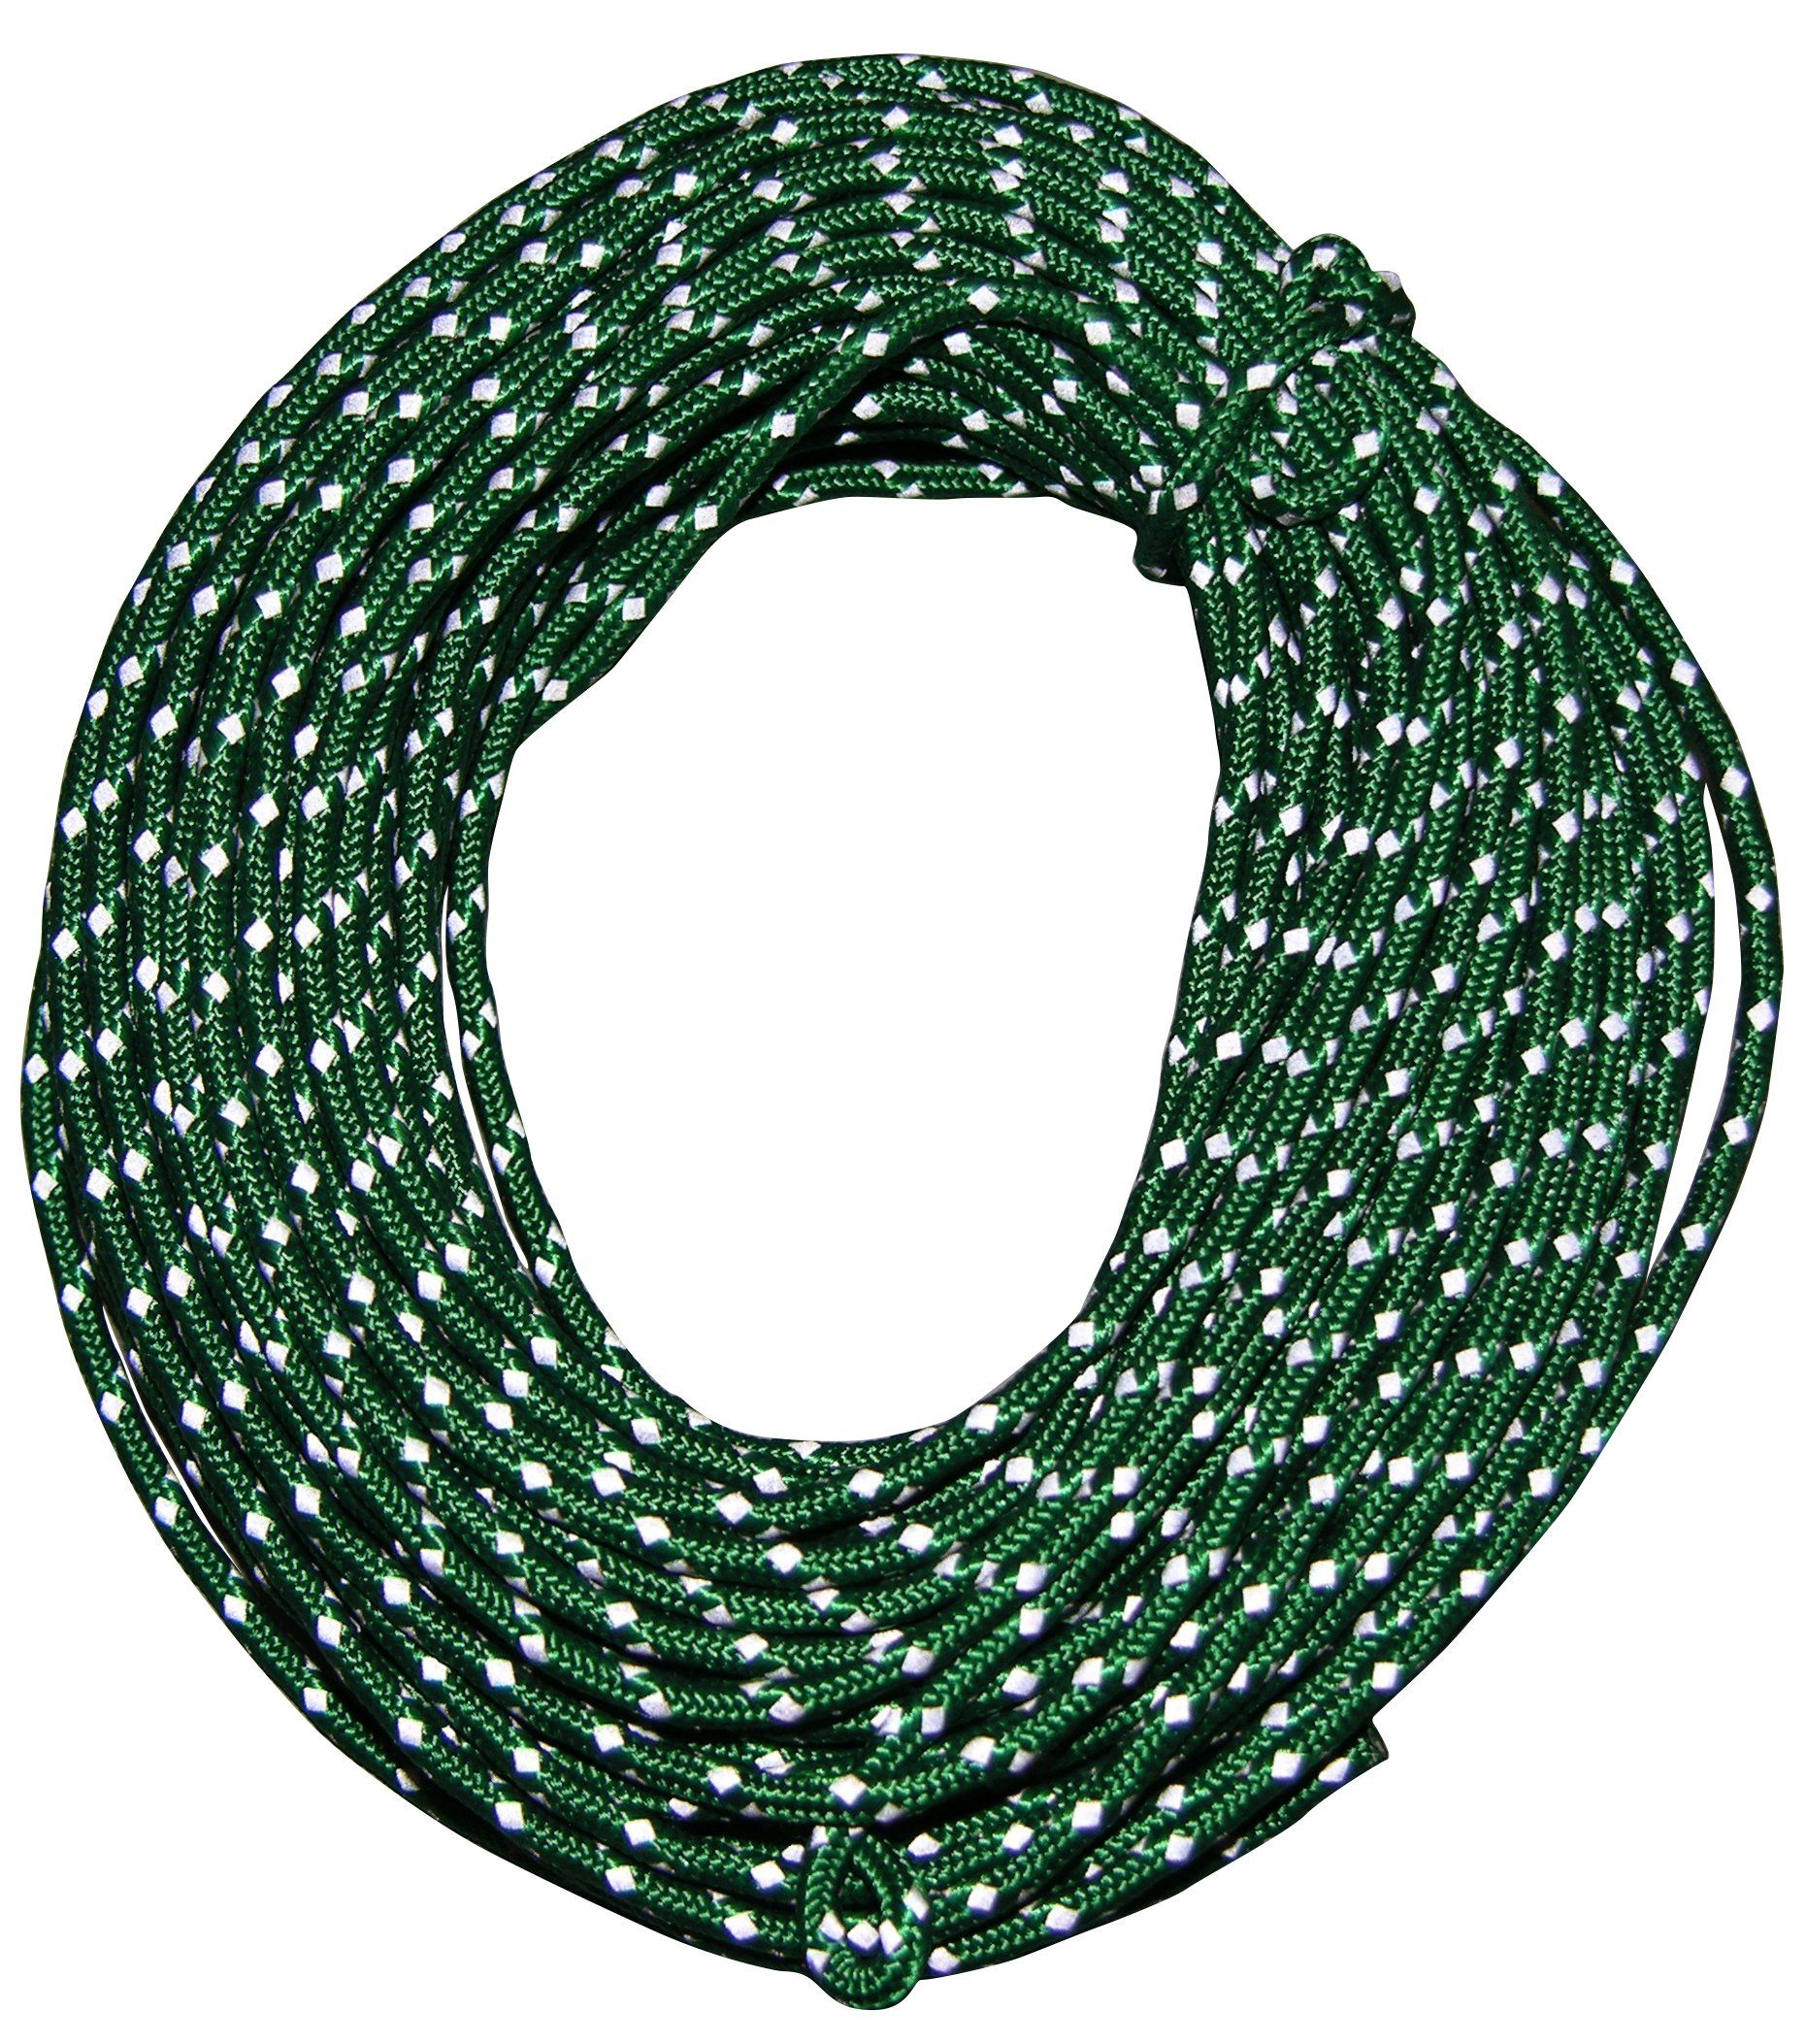 I Switched To This To Use For Throwing Up A Bear Bag Nite Ize Rr 04 50 Reflective Cord 50 Feet Green With Images Nite Ize Reflective Cord